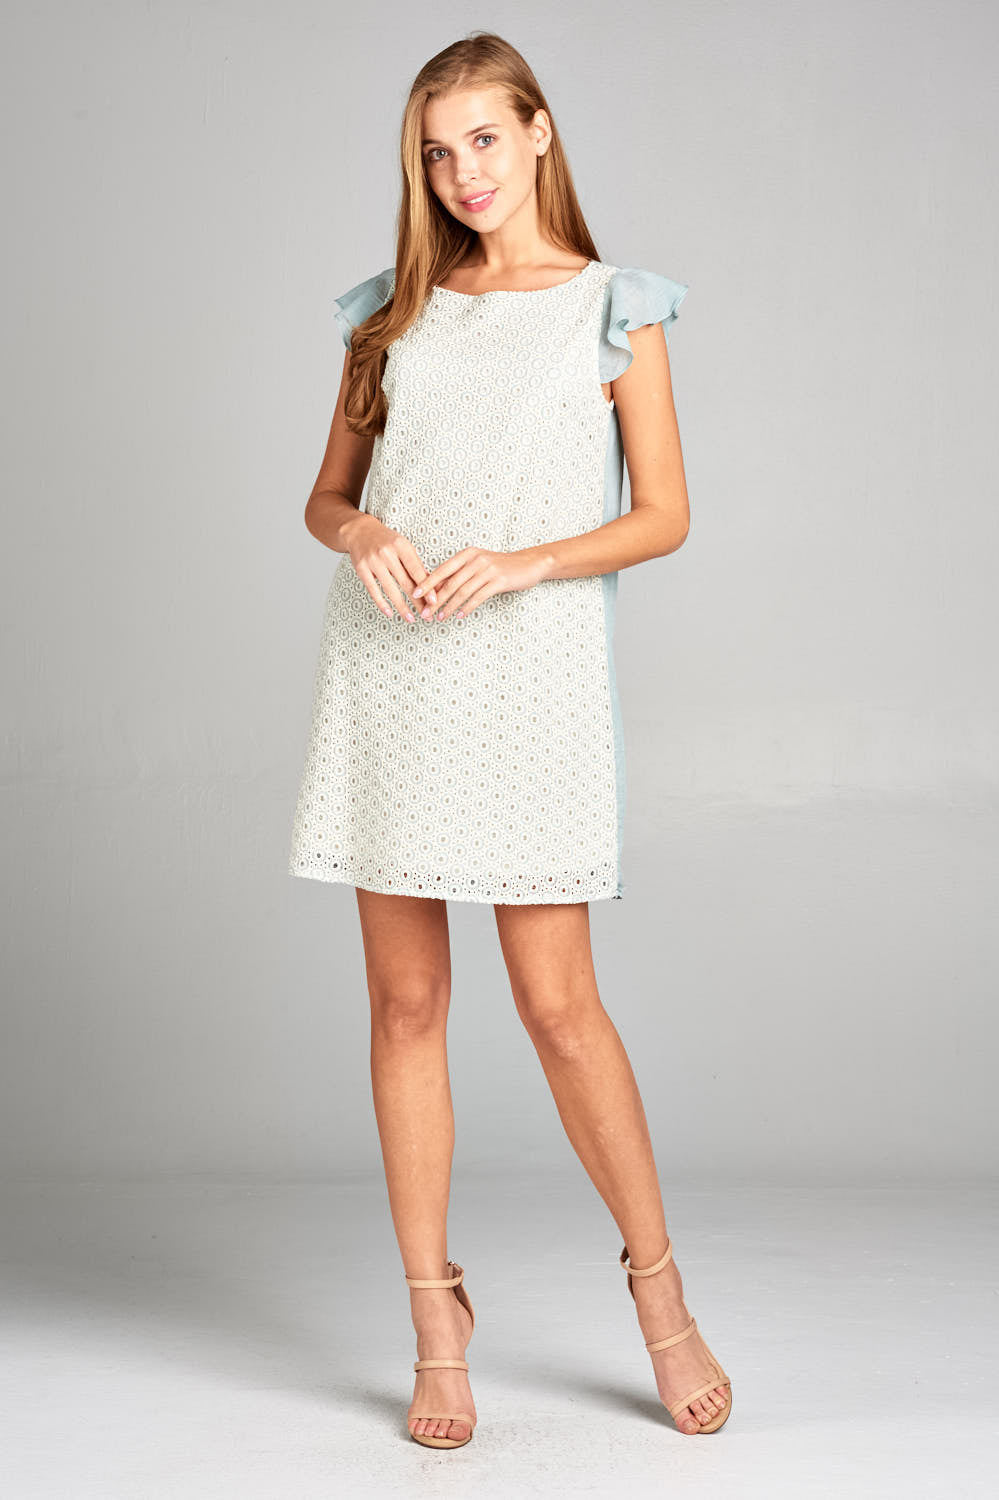 SHORT SLEEVE WITH LACE DETAIL DRESS